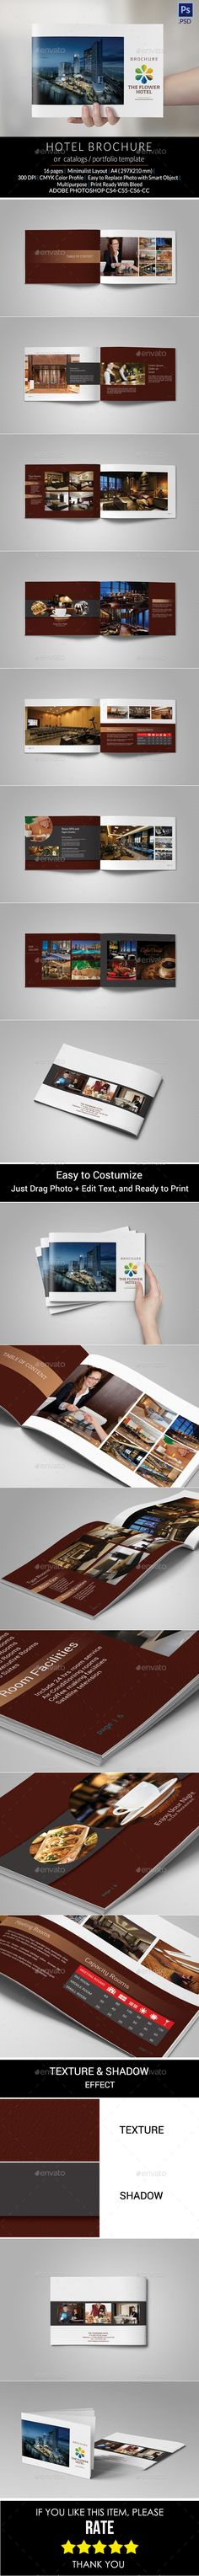 Hotel Brochure — Photoshop PSD #hotel brochure #a4 • Available here → https://graphicriver.net/item/hotel-brochure/11086088?ref=pxcr